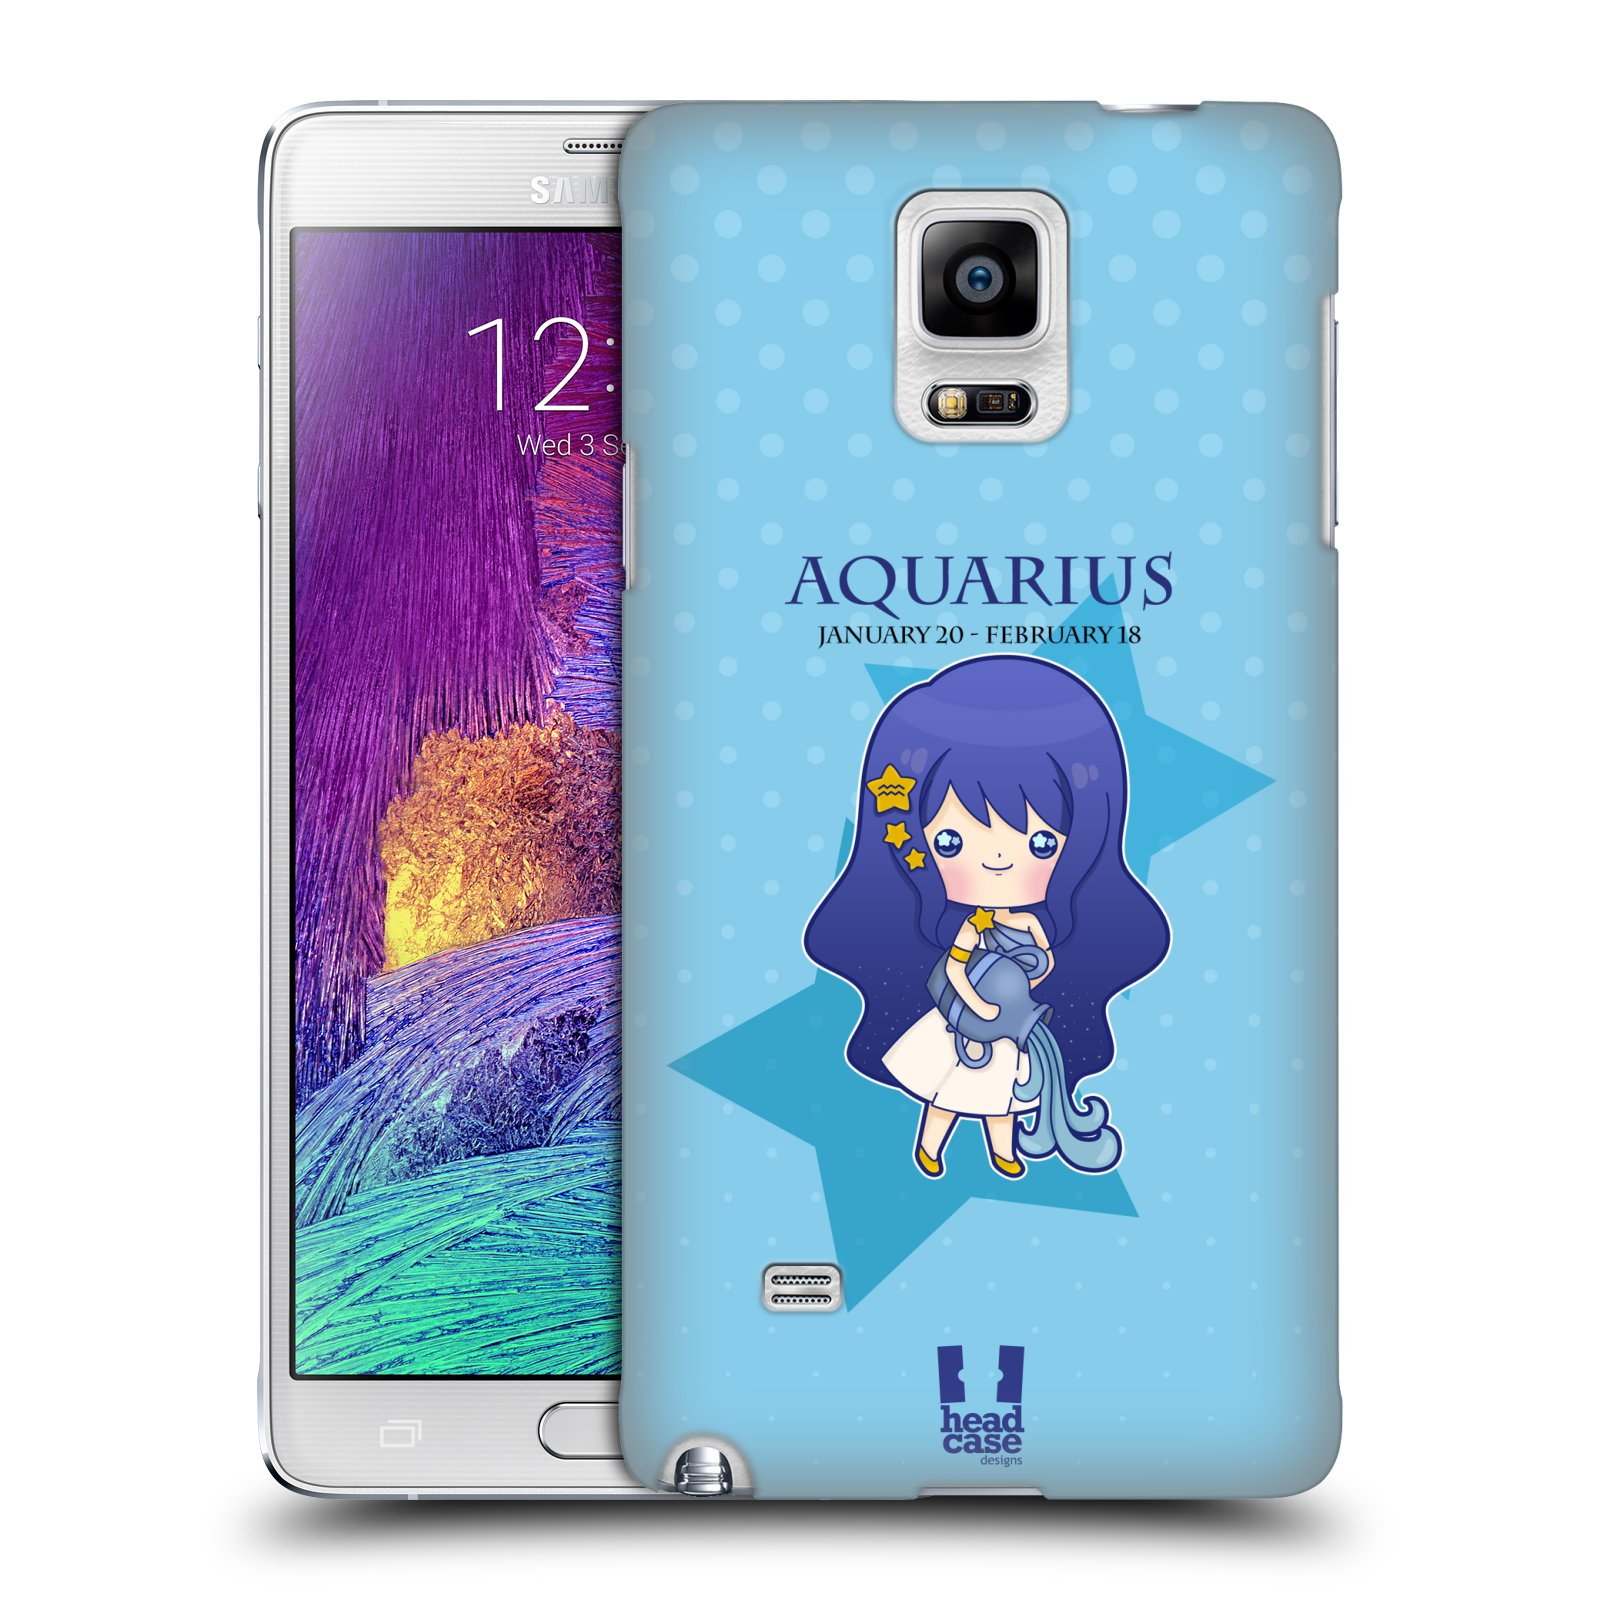 HEAD CASE DESIGNS KAWAII ZODIAC SIGNS CASE COVER FOR SAMSUNG GALAXY NOTE 4